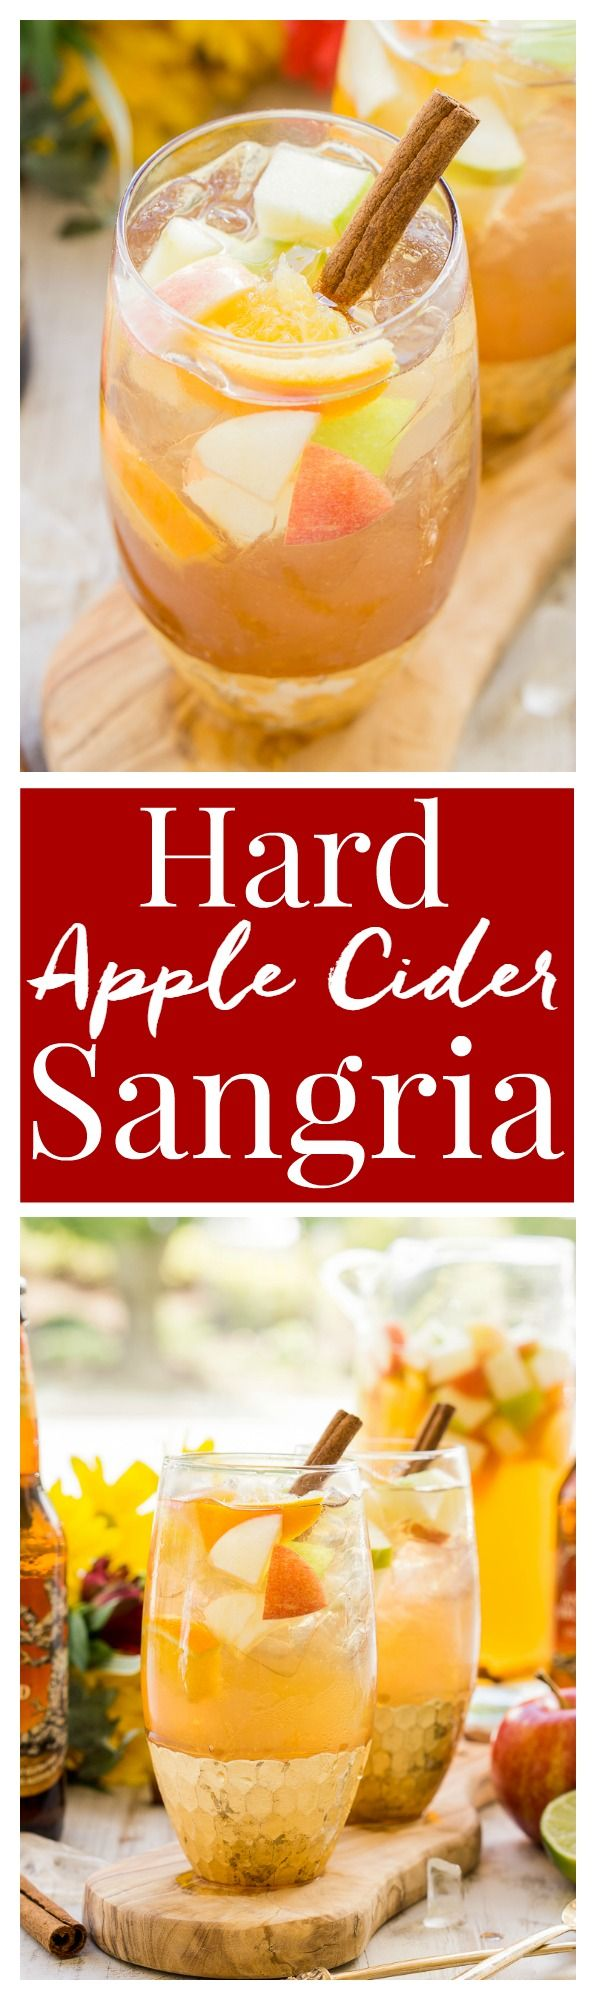 This Hard Apple Cider Sangria brings together the cozy flavors of fall in a…